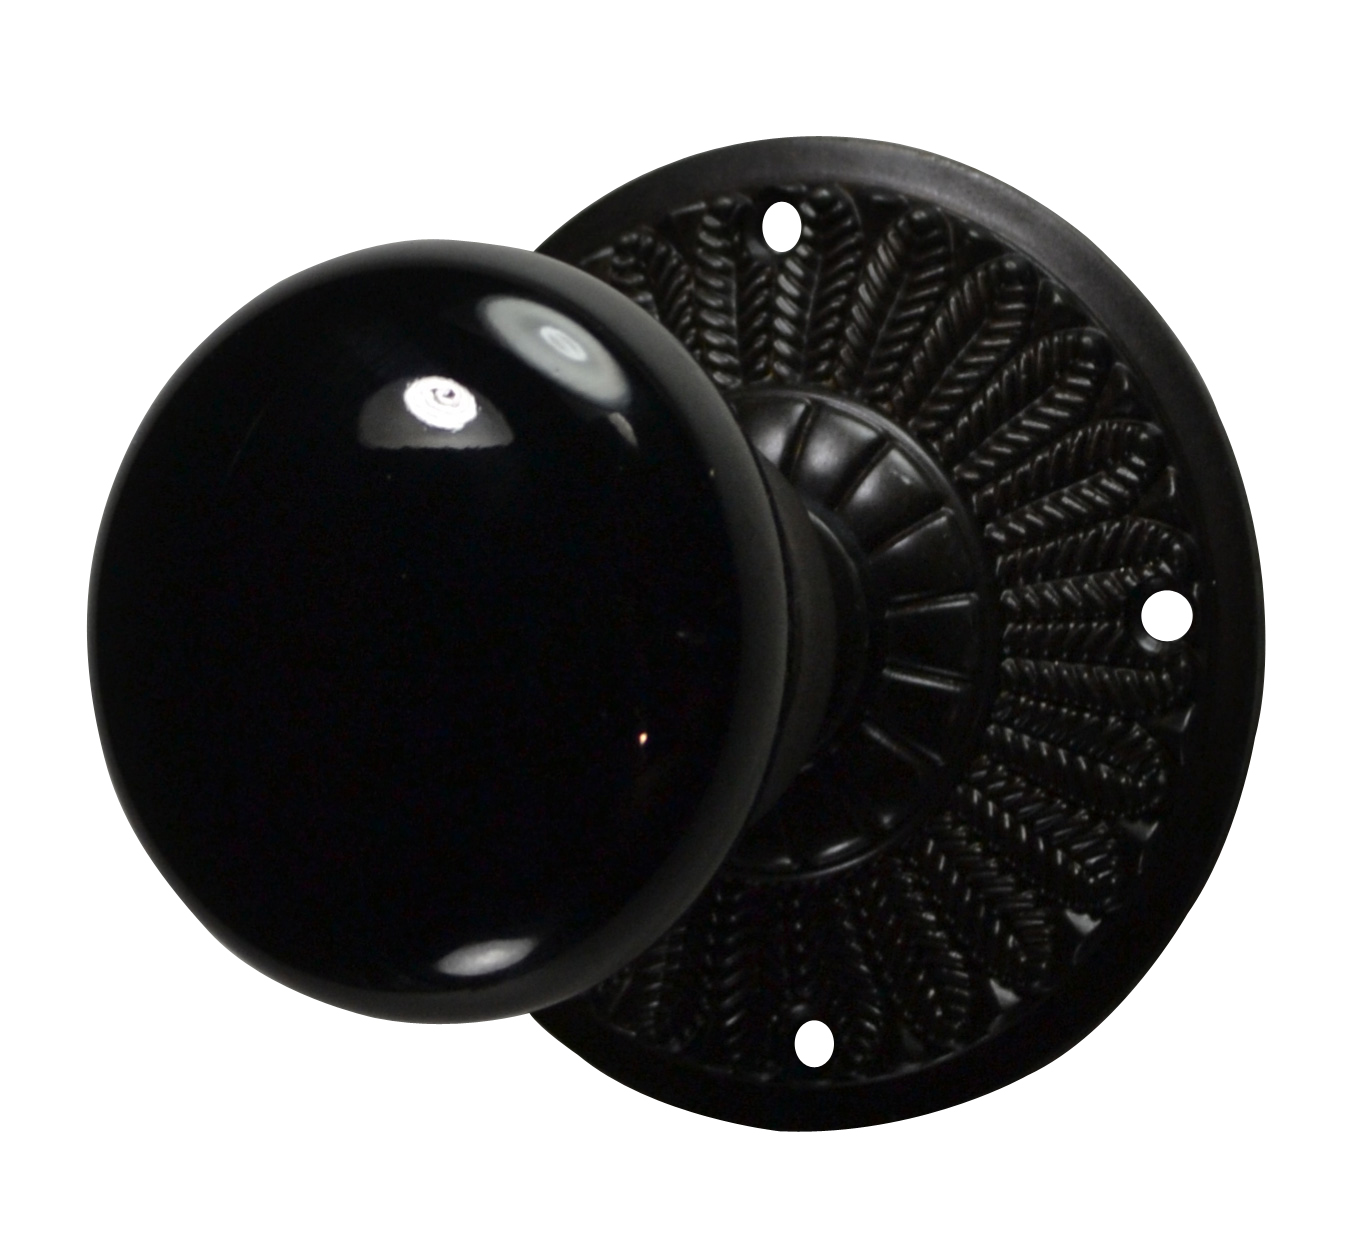 Feathers Black Porcelain Door Knob (Oil Rubbed Bronze Finish)